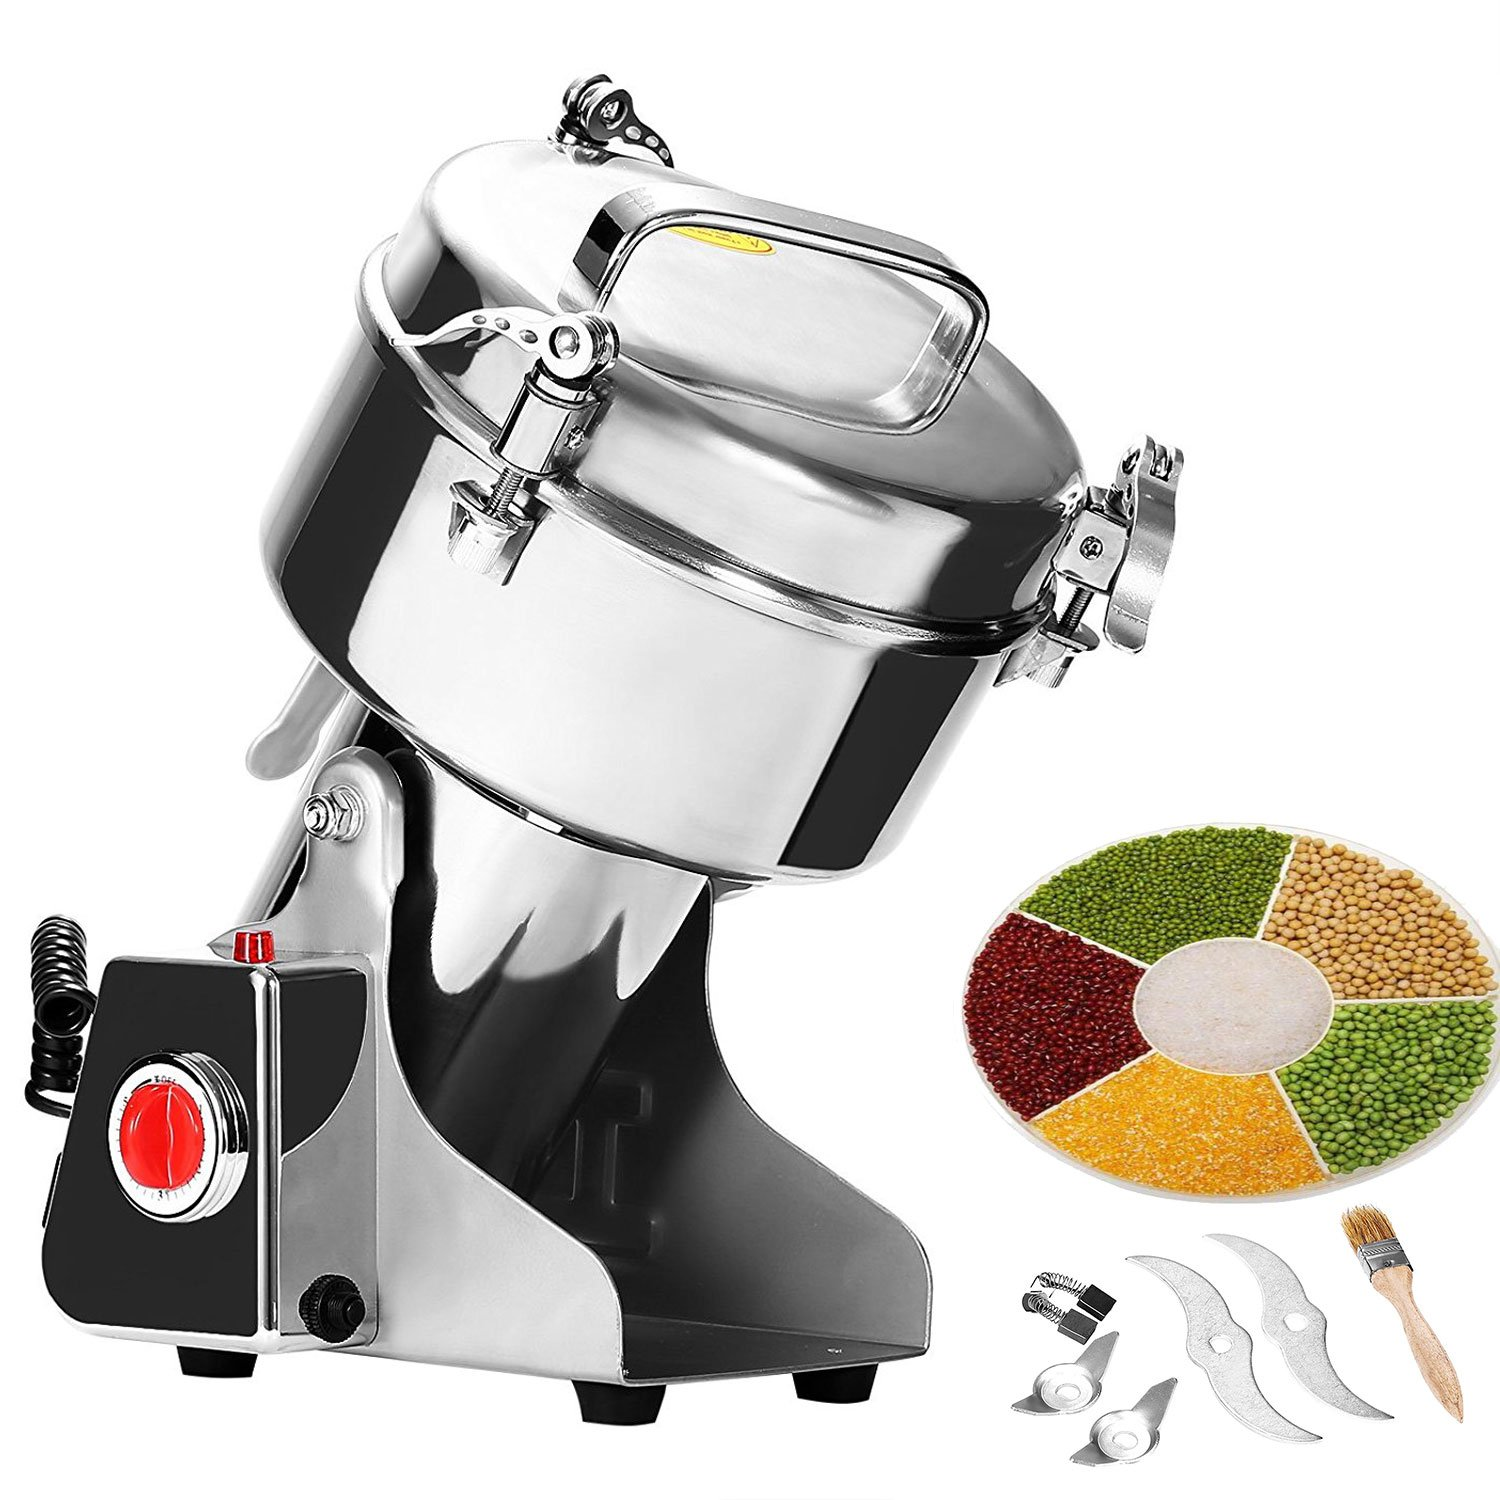 Happybuy Electric Grain Grinder Mill Powder Machine Swing Type Commercial Electric Grain Mill Grinder for Herb Pulverizer Food Grade Stainless Steel (150g)